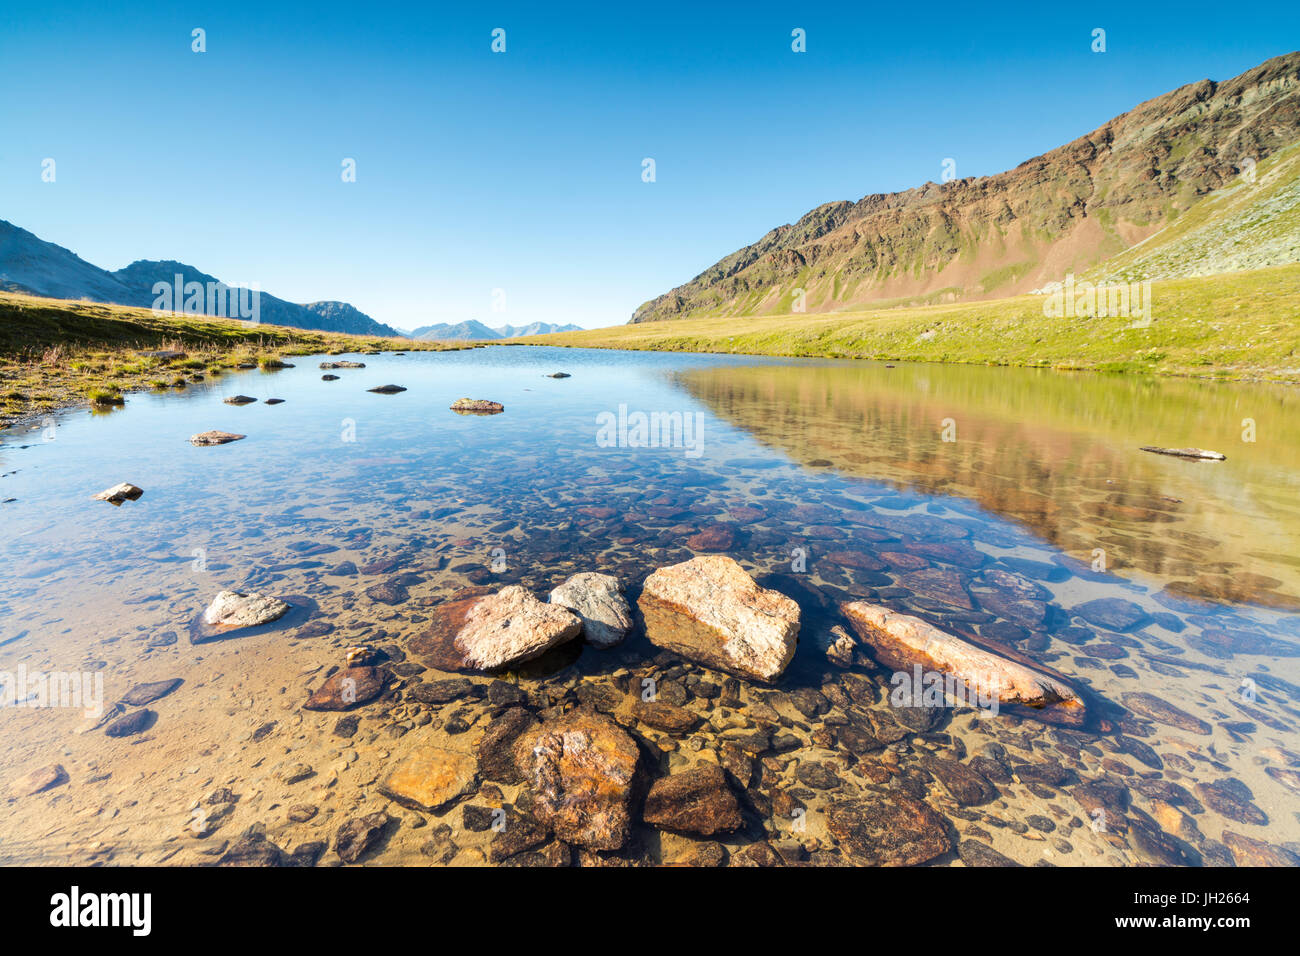 Sun shines on the rocky peaks reflected in the clear water of Lake Umbrail, Stelvio Pass, Valtellina, Lombardy, Stock Photo